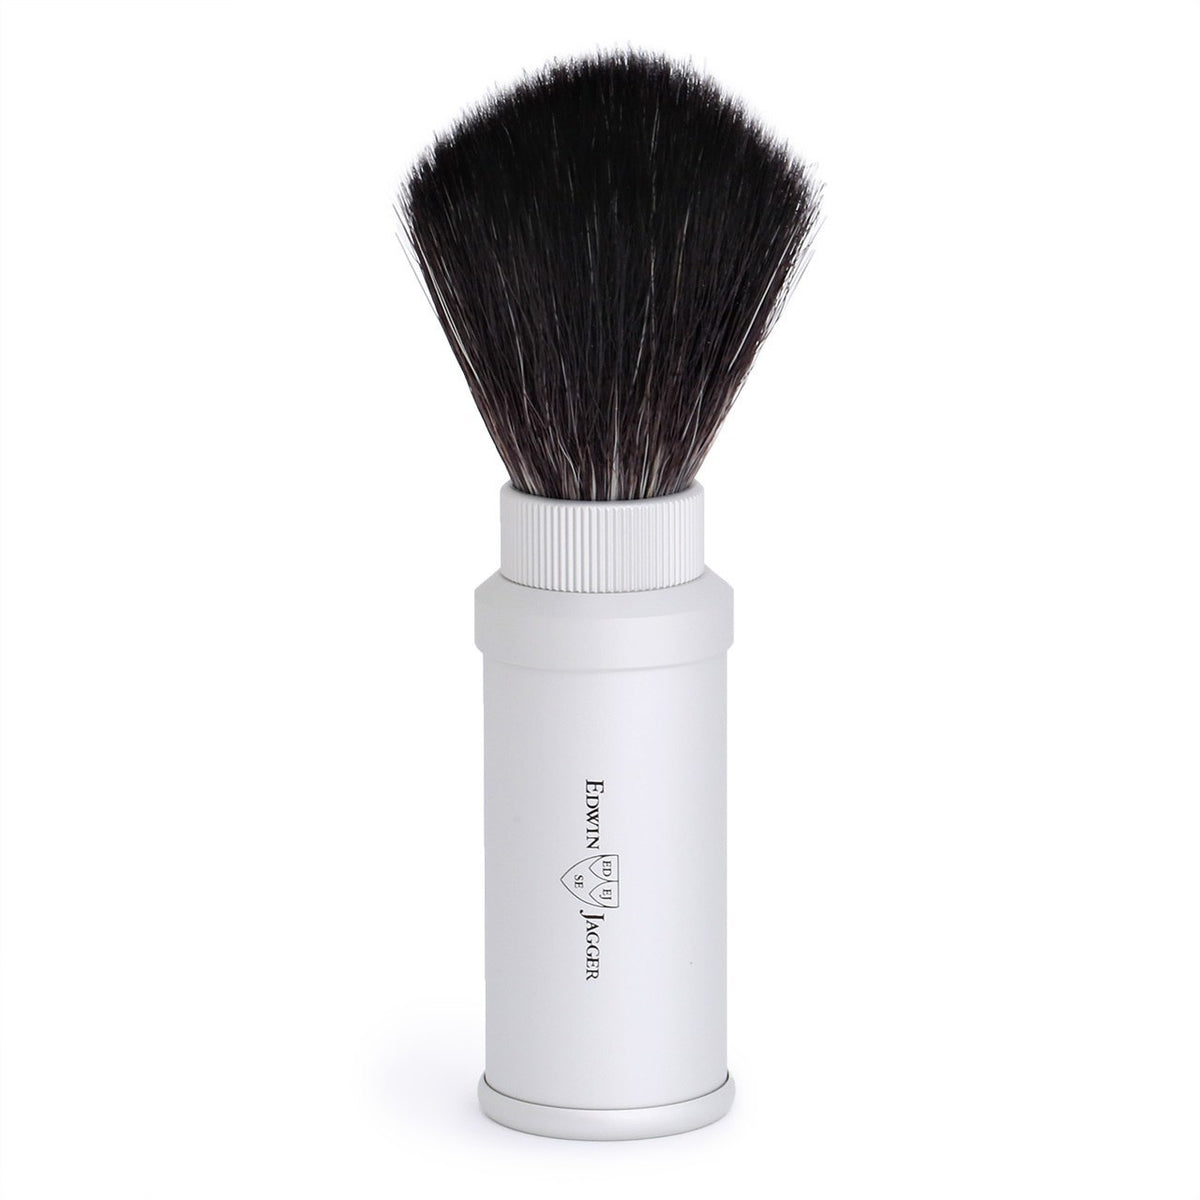 Edwin Jagger Travel Black Synthetic Shaving Brush  - Silver